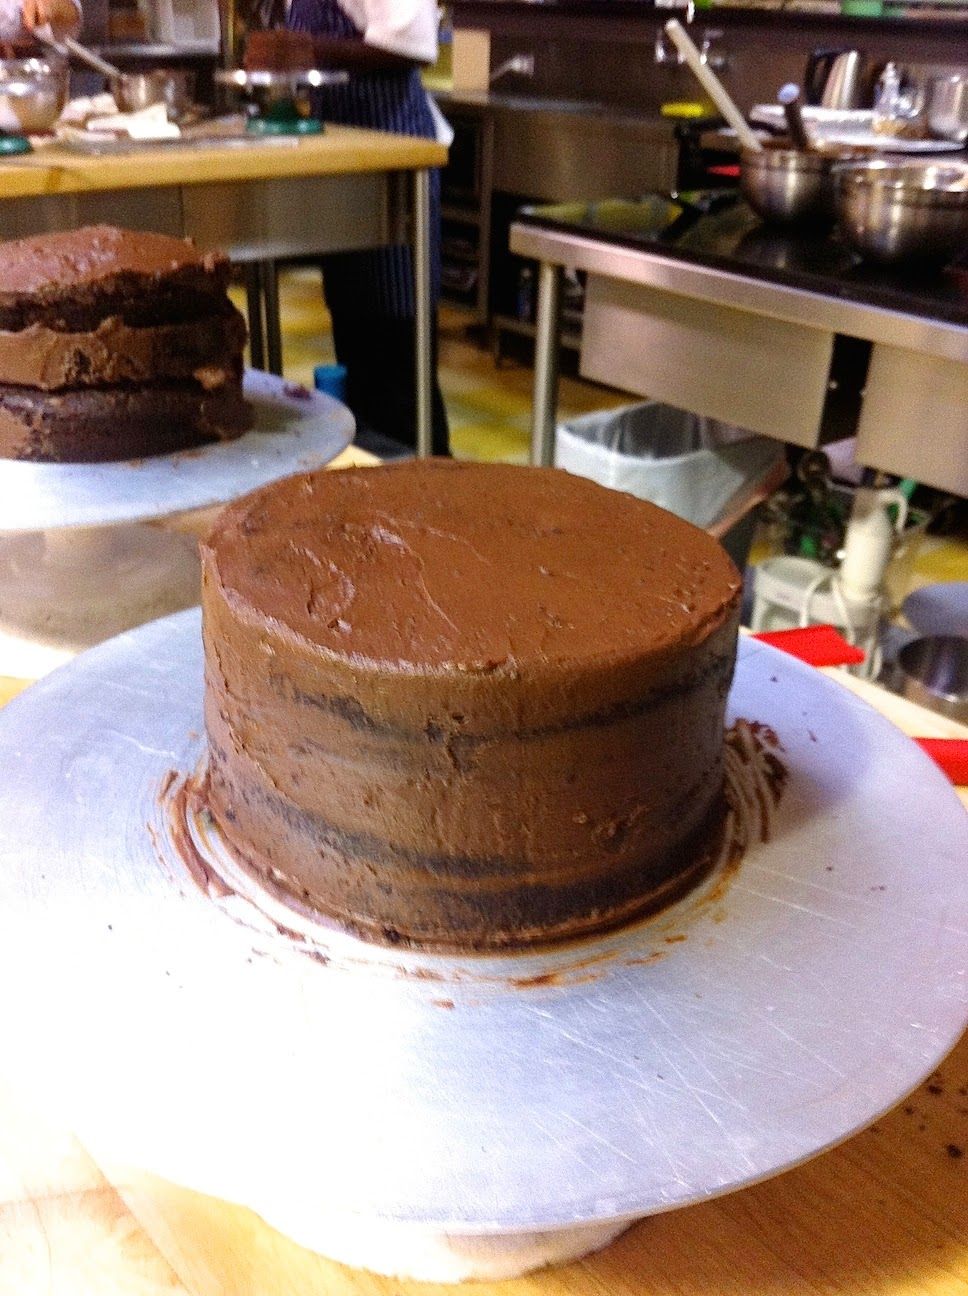 Scenes from the pastry kitchen.